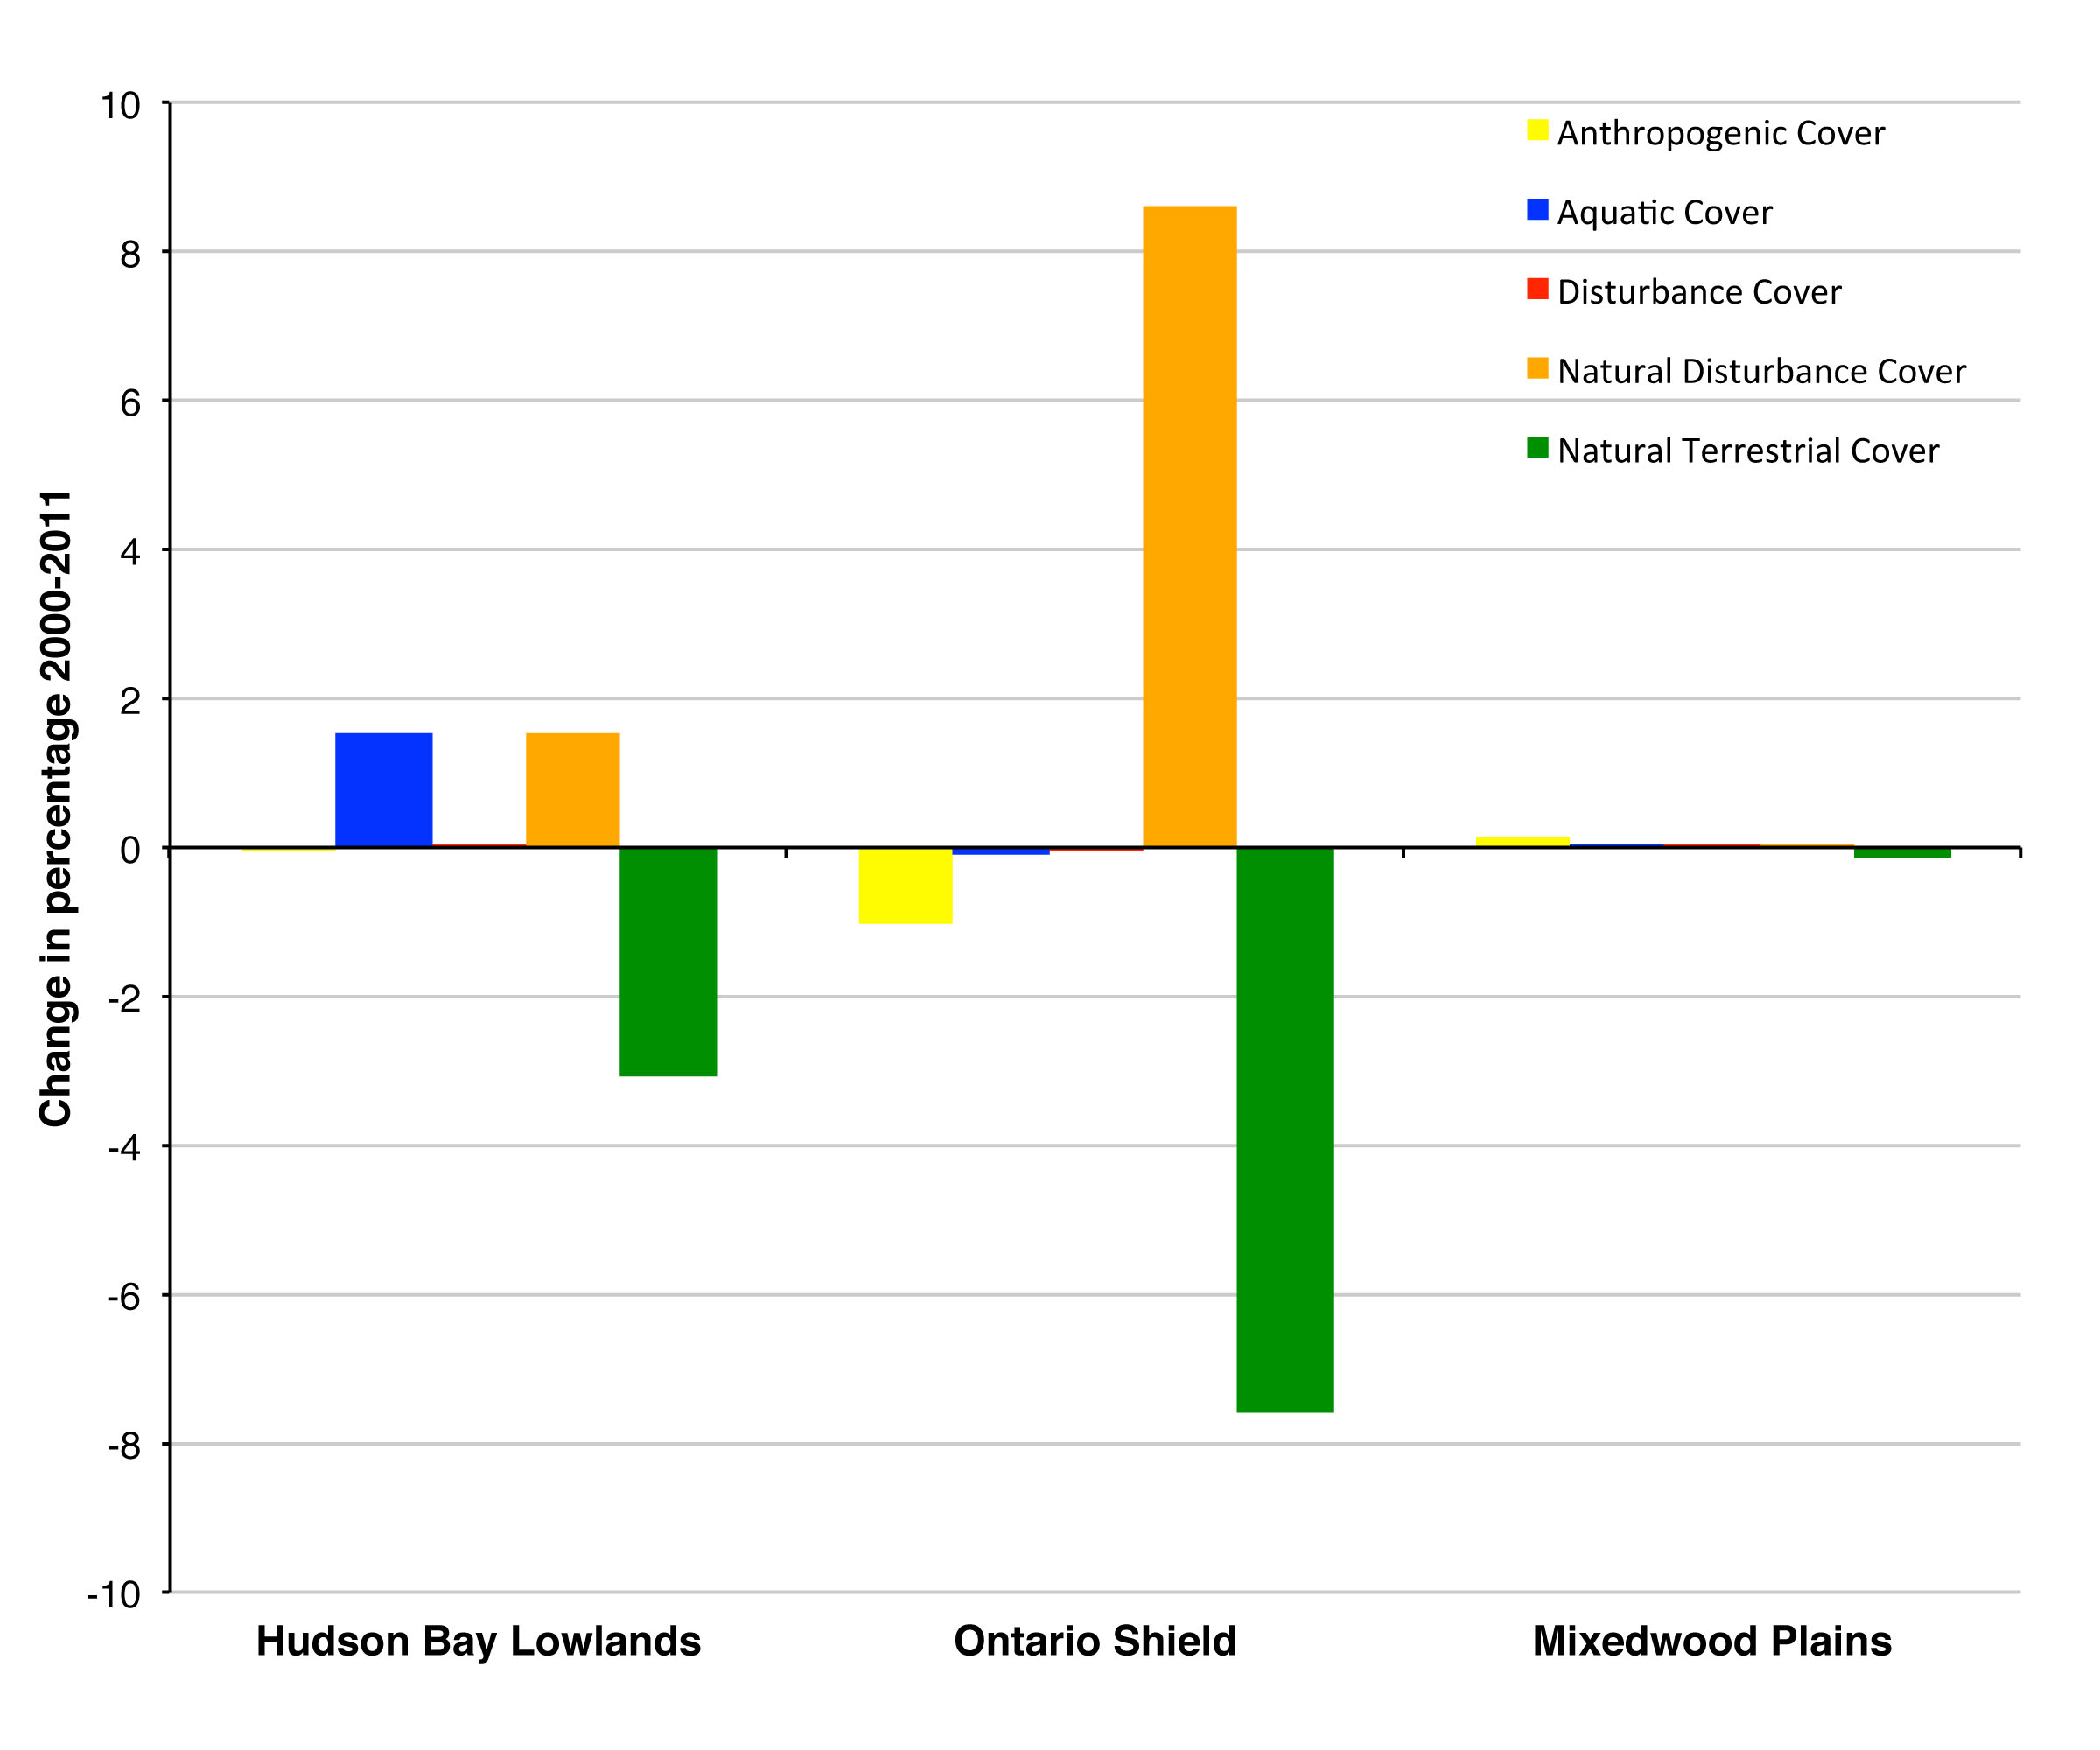 Figure 2. Changes in the percentage of land cover composition for Ontario ecozones between 2000 and 2011.